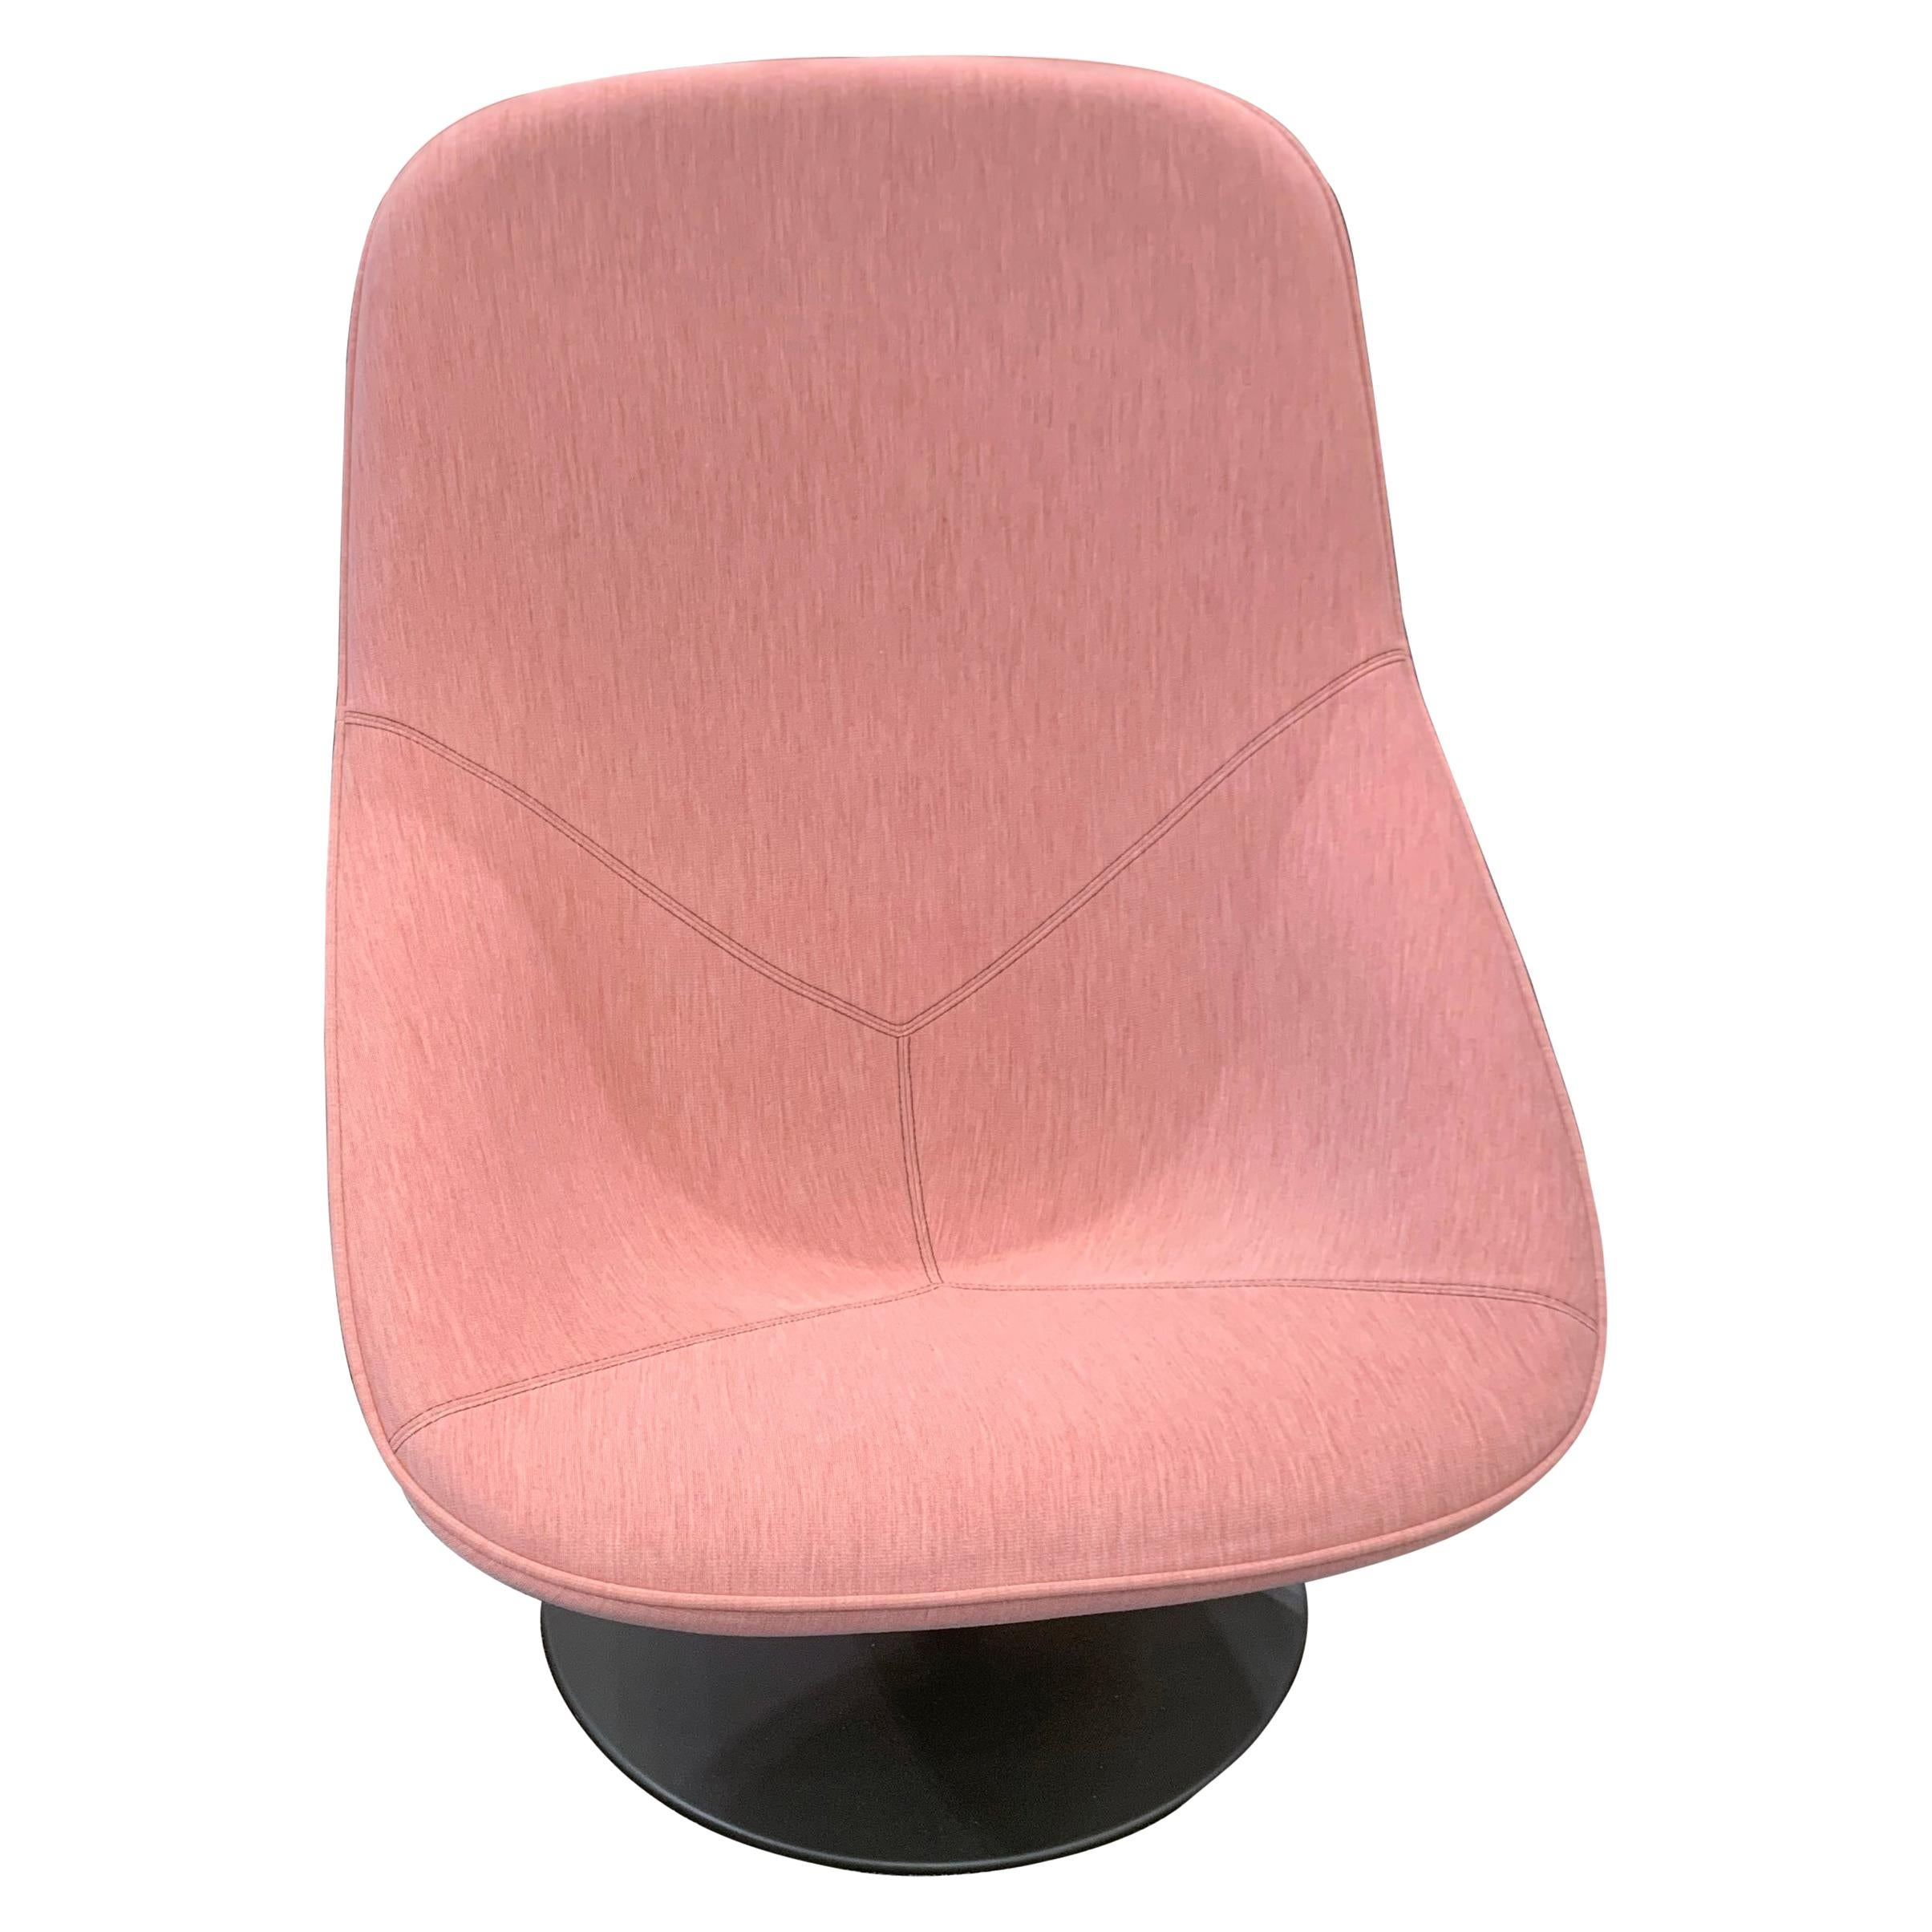 Swell Pink Swivel Chairs 21 For Sale On 1Stdibs Machost Co Dining Chair Design Ideas Machostcouk